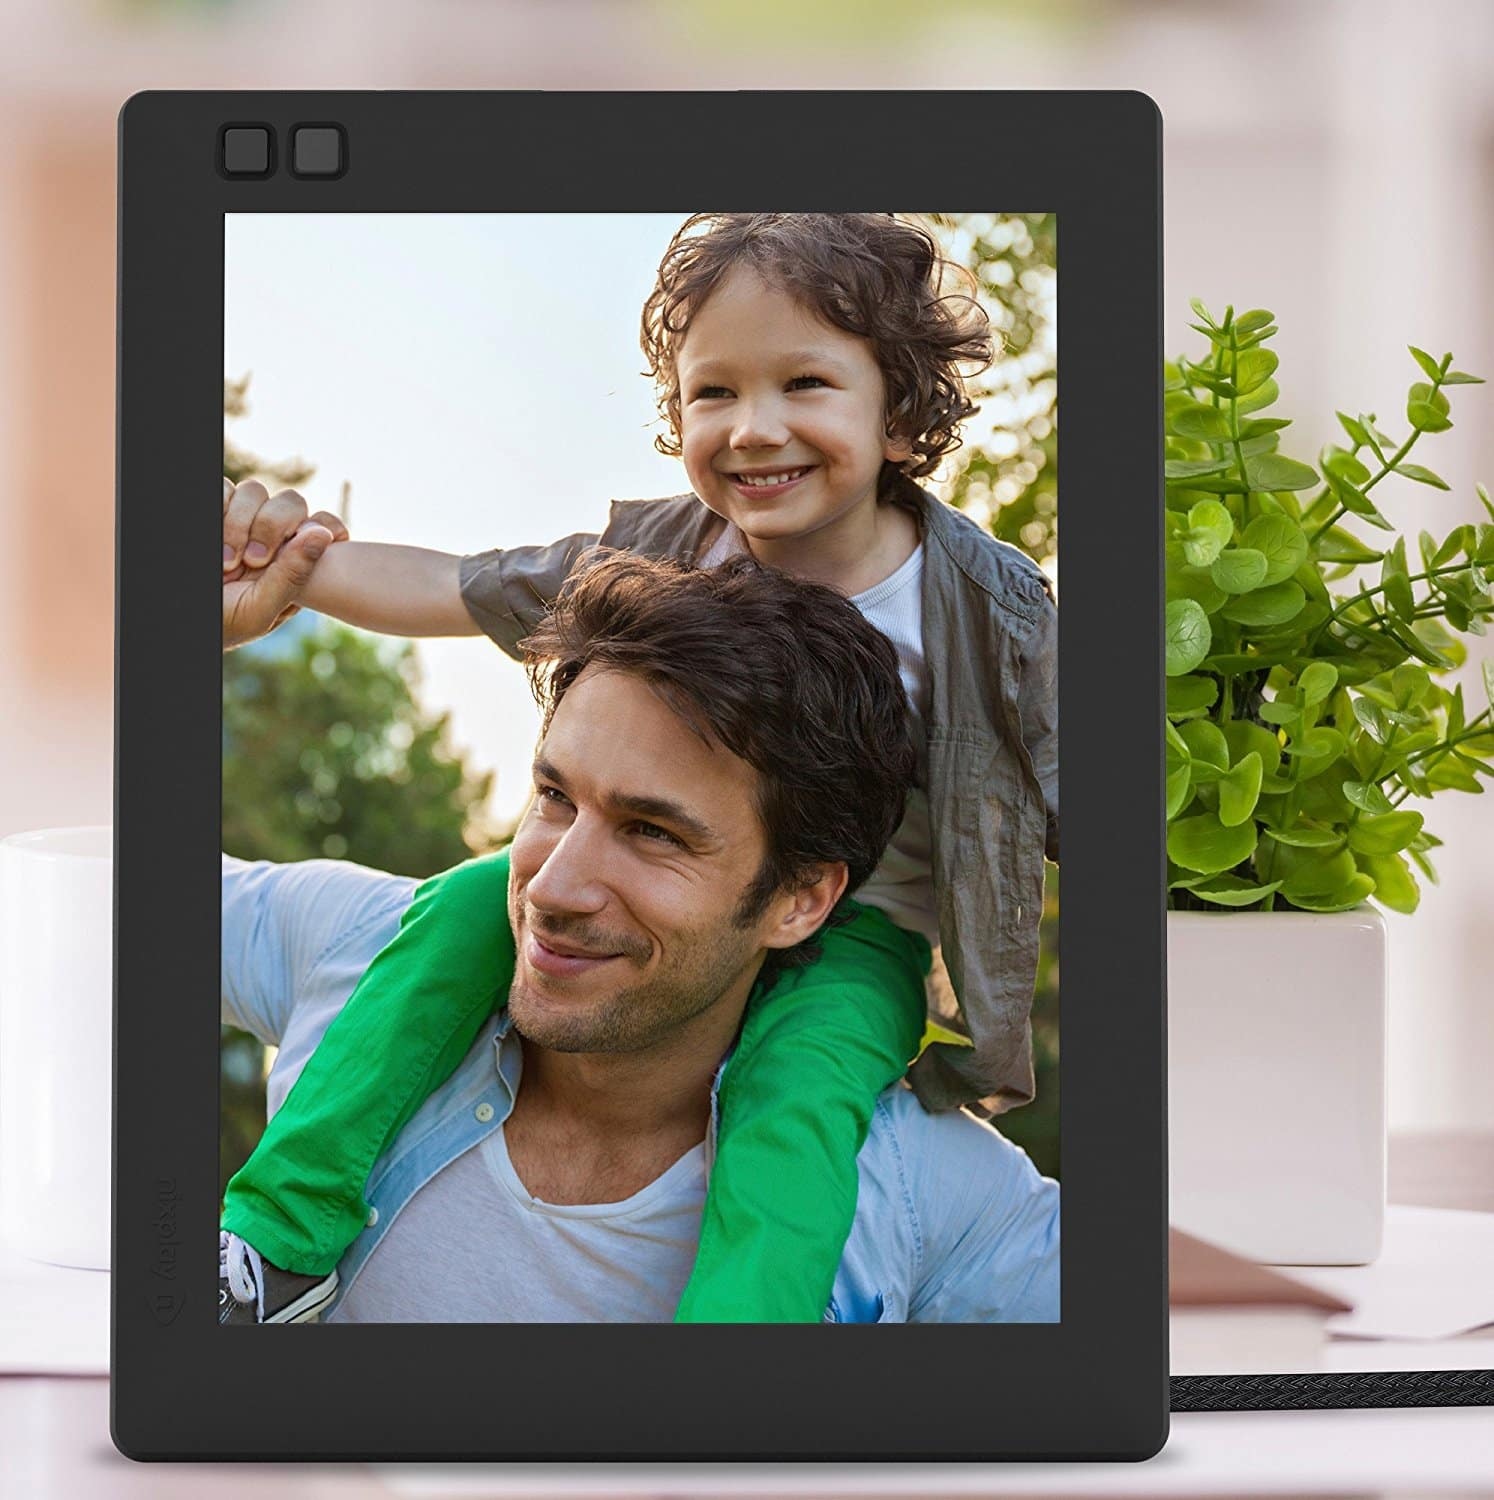 Nixplay Seed 8 inch WiFi Digital Photo Frame Reviews, Coupons, and...